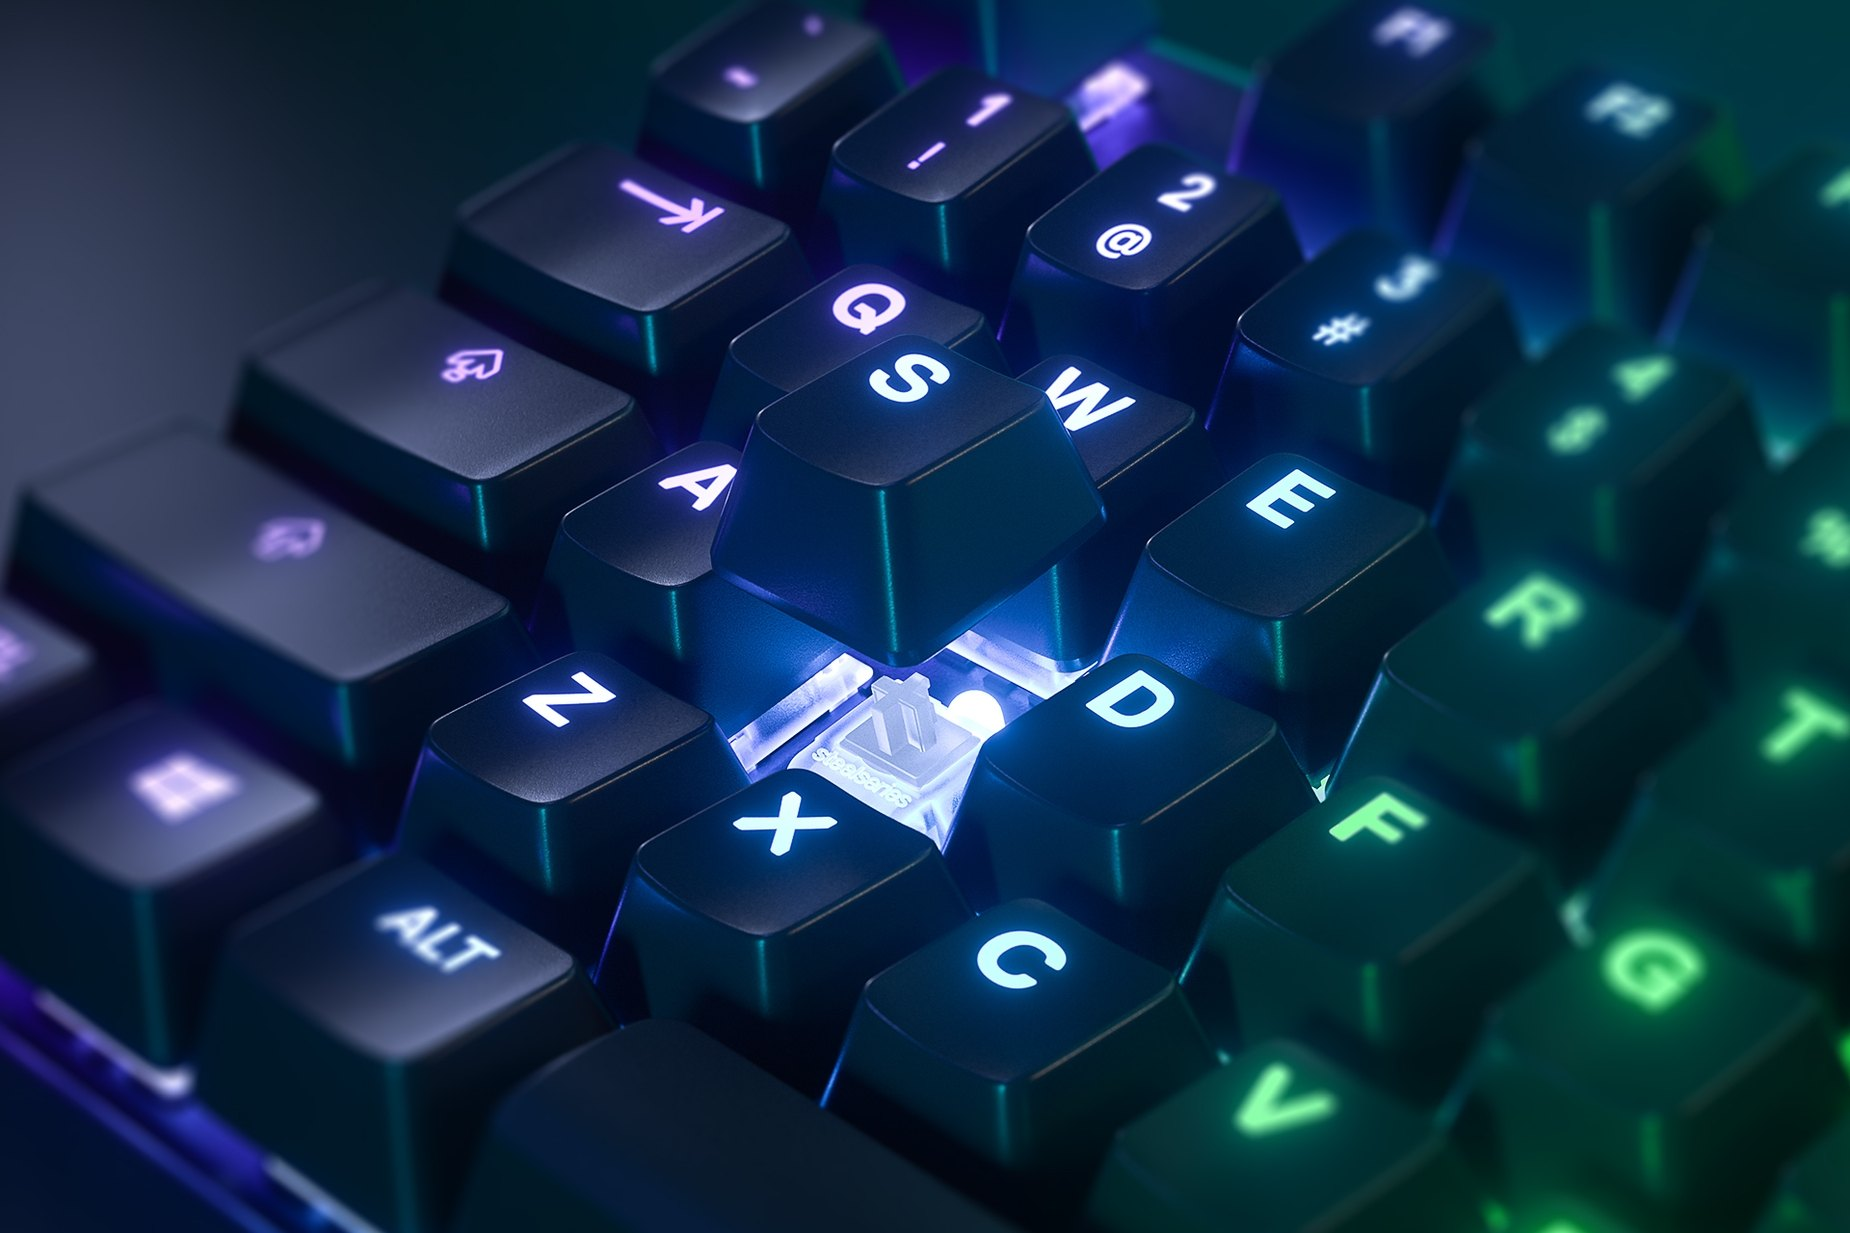 Zoomed in view of a single key on the Japanese - APEX PRO gaming keyboard, the key is raised up to show the SteelSeries OmniPoint Adjustable Mechanical Switch underneath